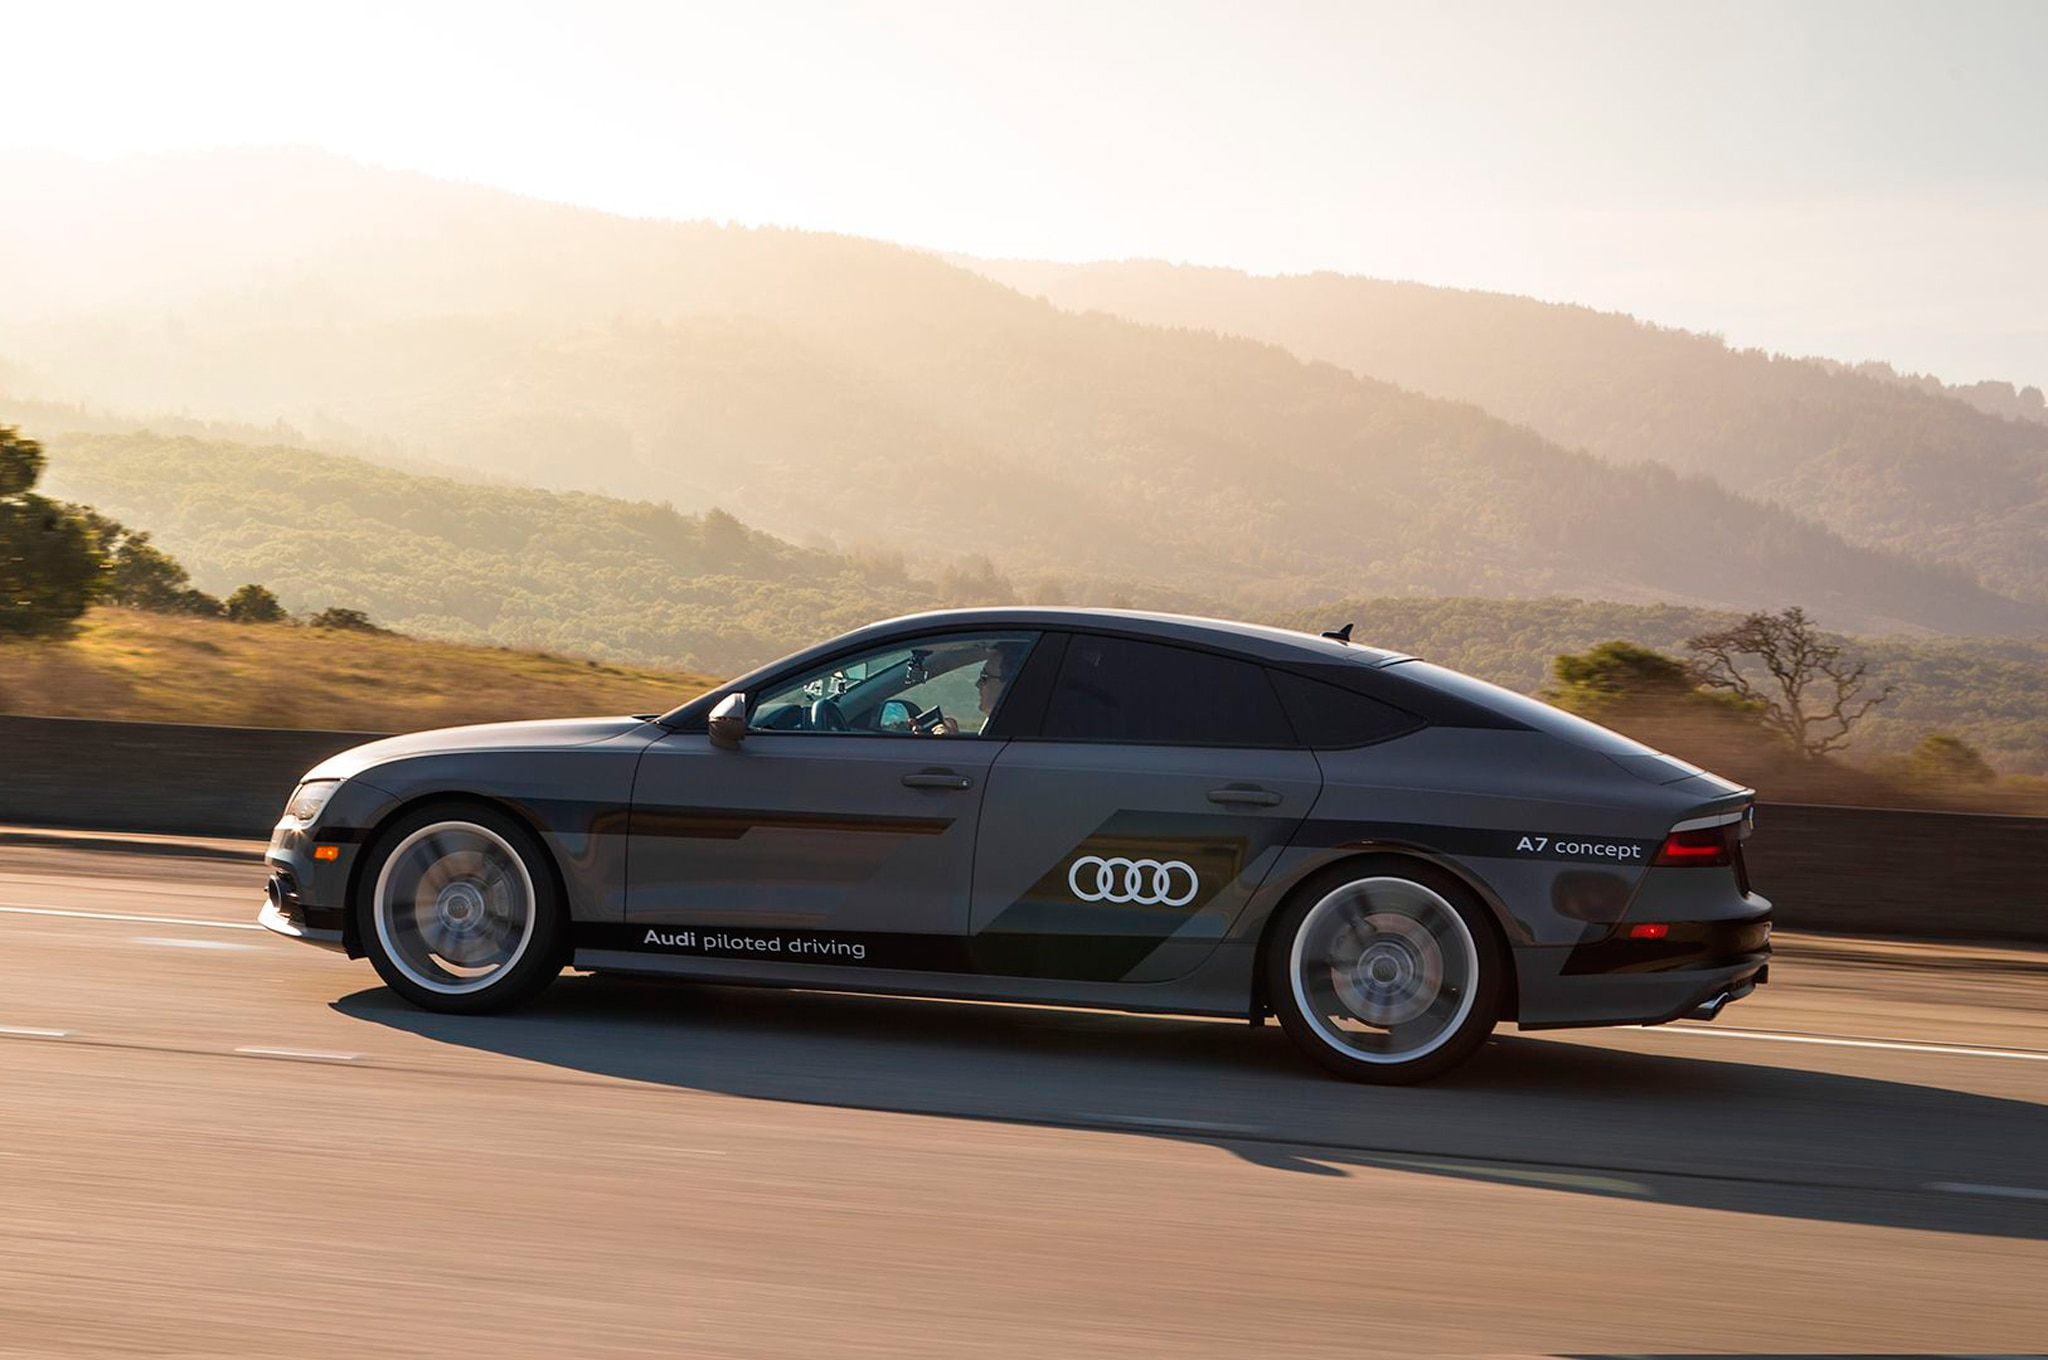 Audi A7 Sportback Piloted Driving Concept Side Profile